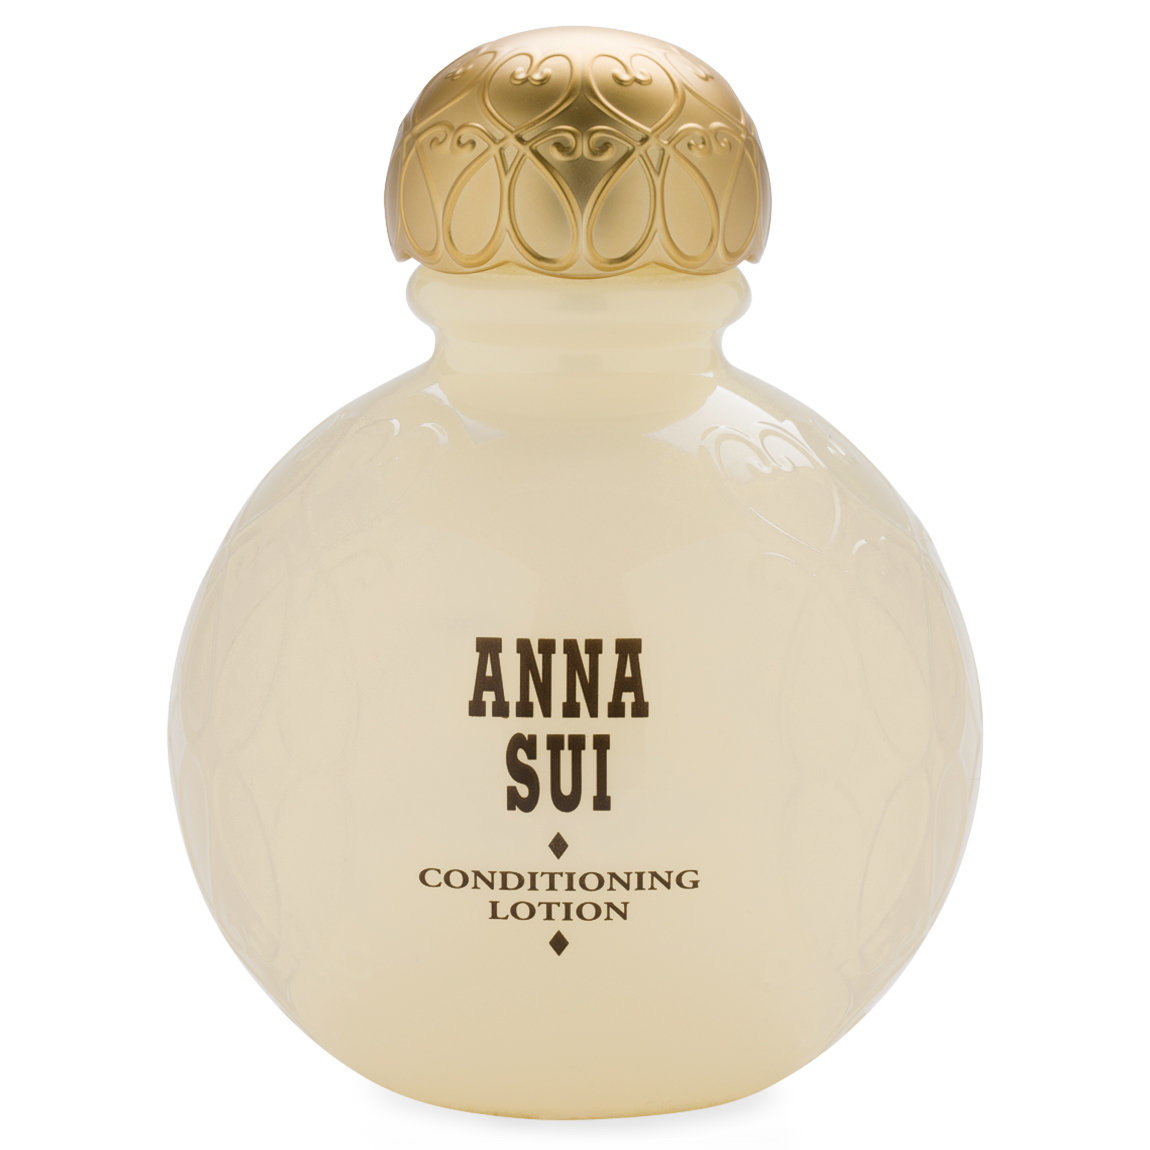 Anna Sui Conditioning Lotion product smear.